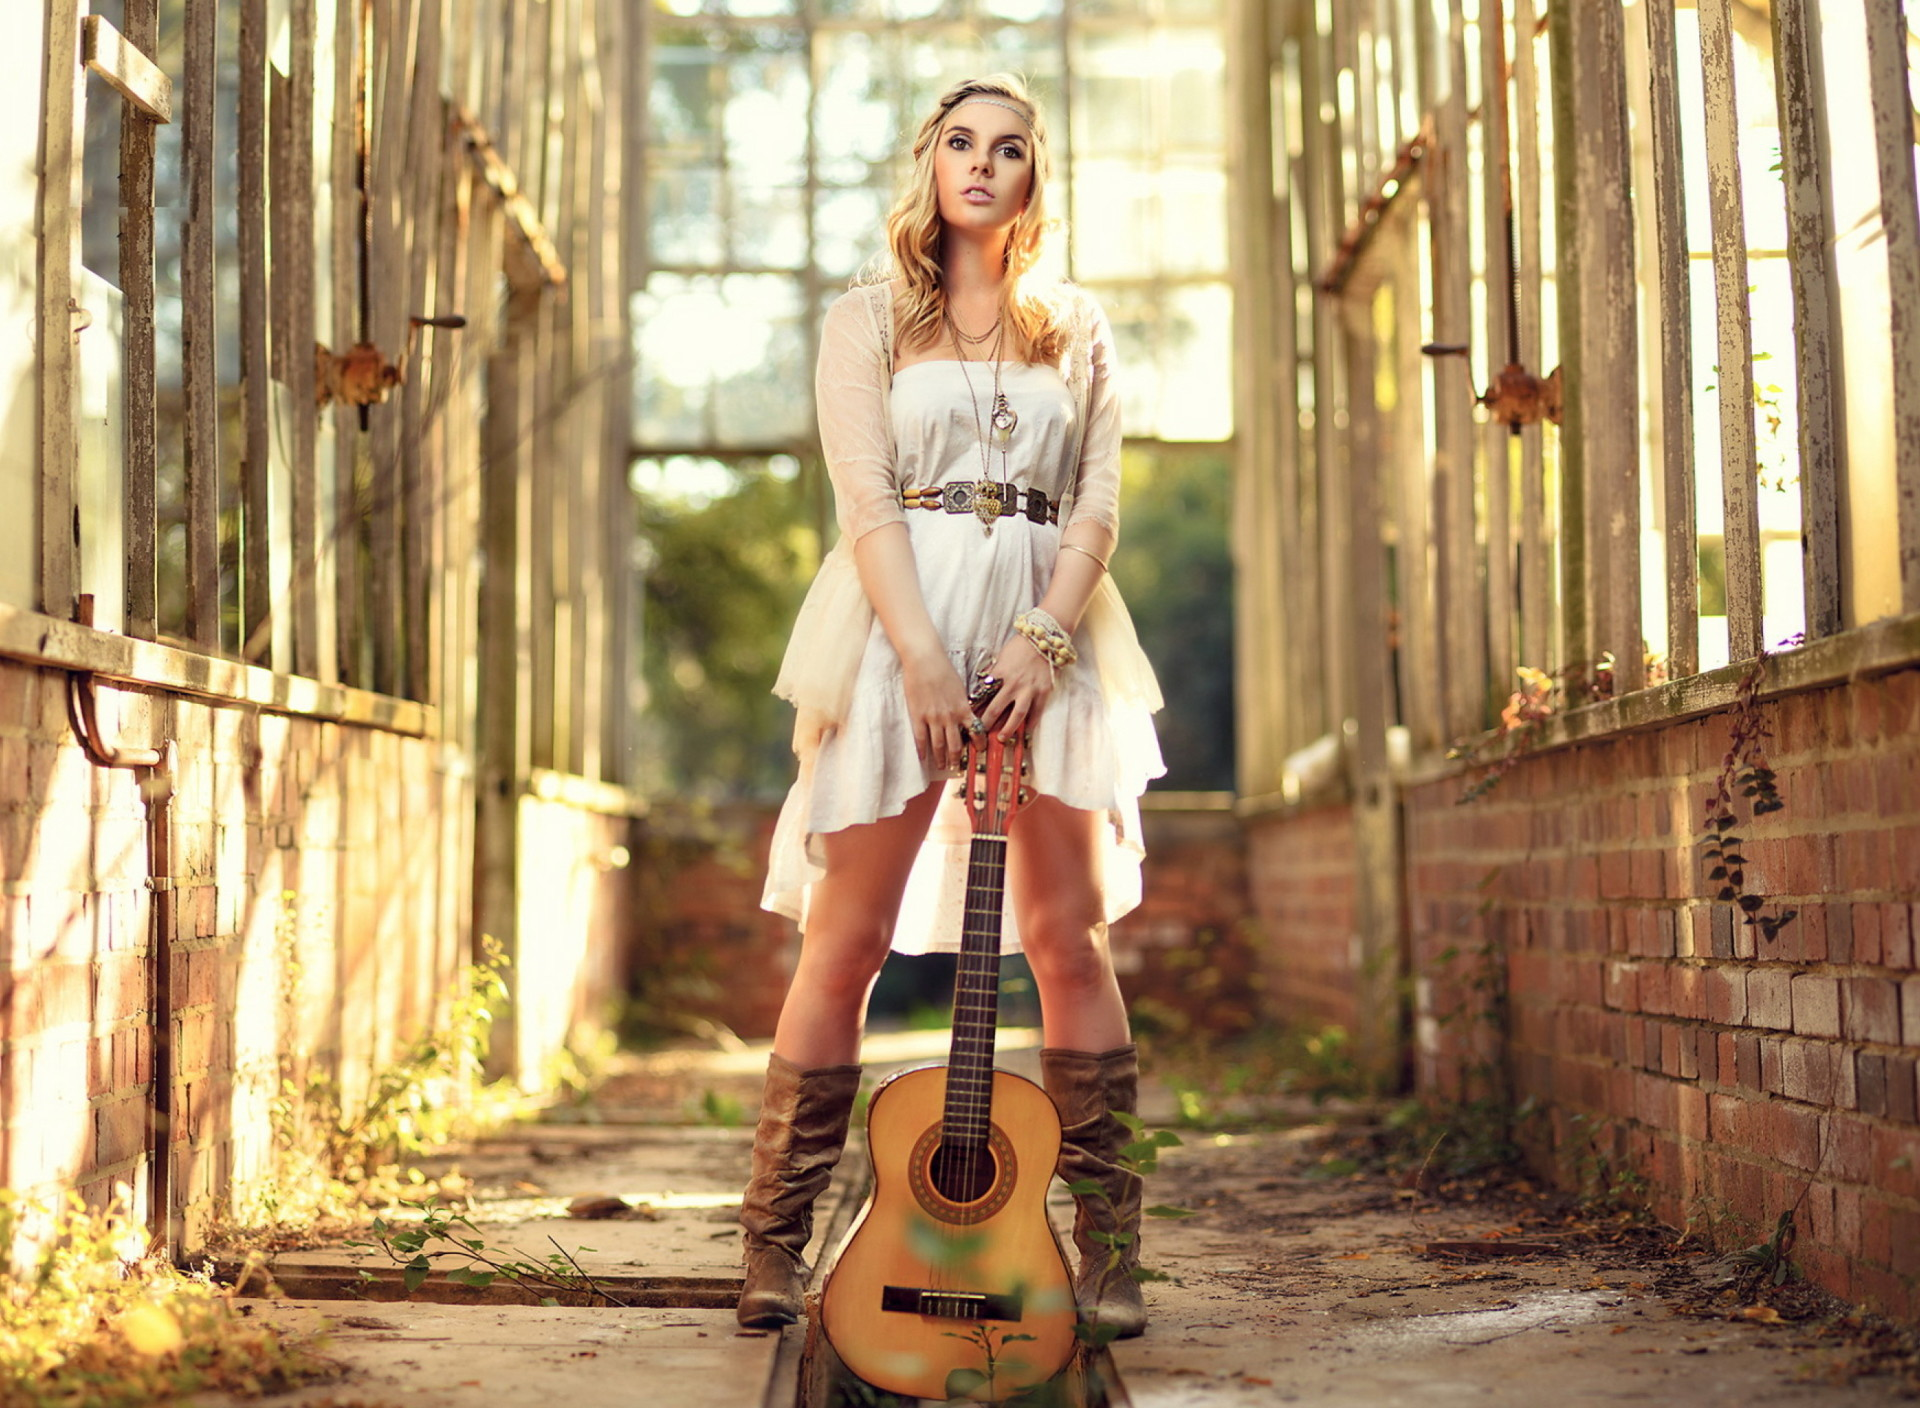 Res: 1920x1408, free wallpaper girls wallpaper.wiki girl with guitar chic country style  images 1920×1408 pic wpd009793